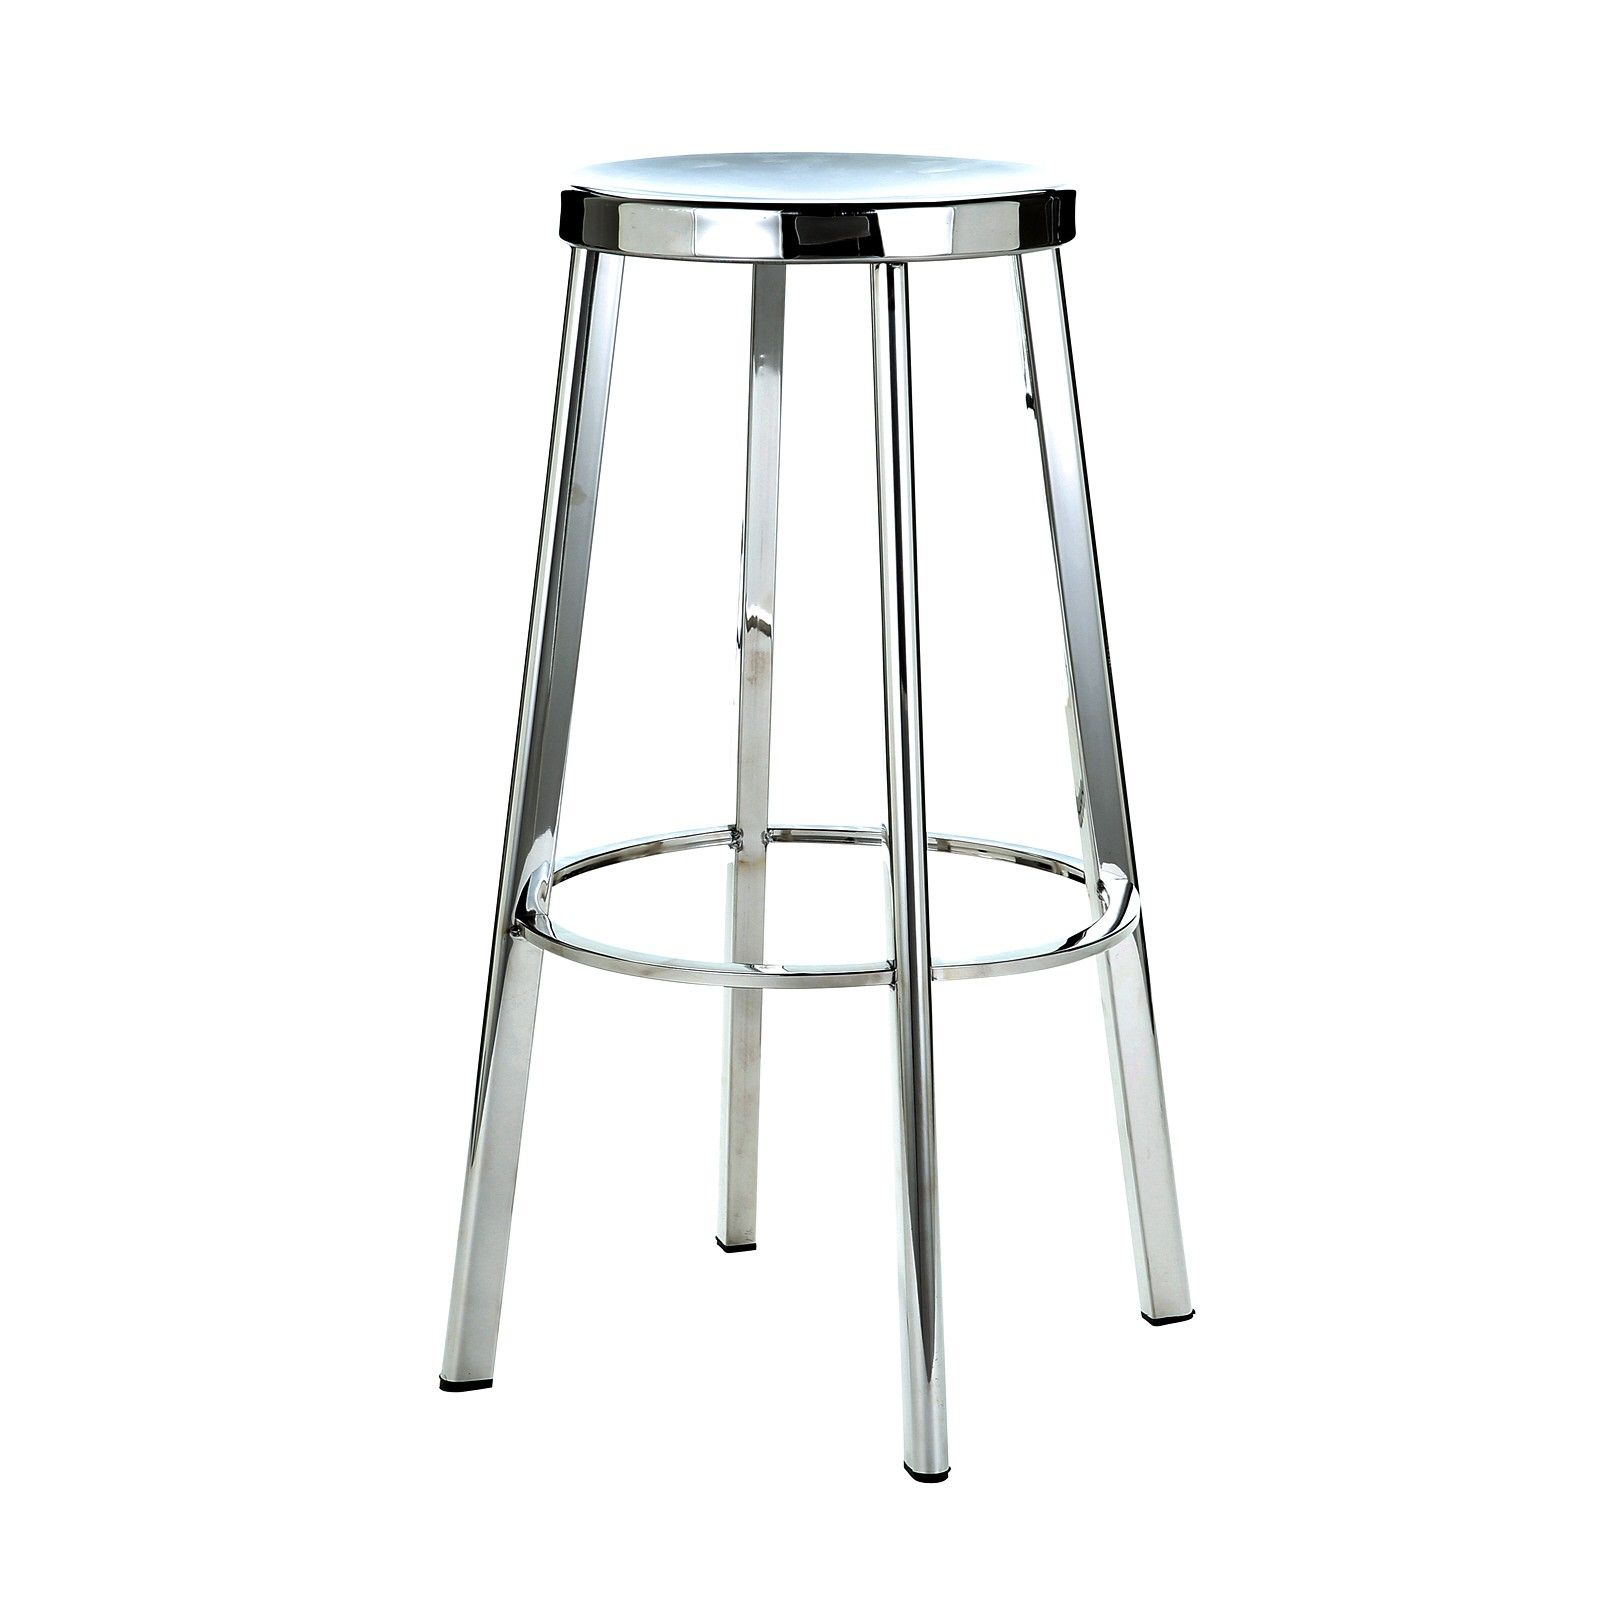 stainless steel stools kitchen farm table polished and brushed sassy 45cm bar